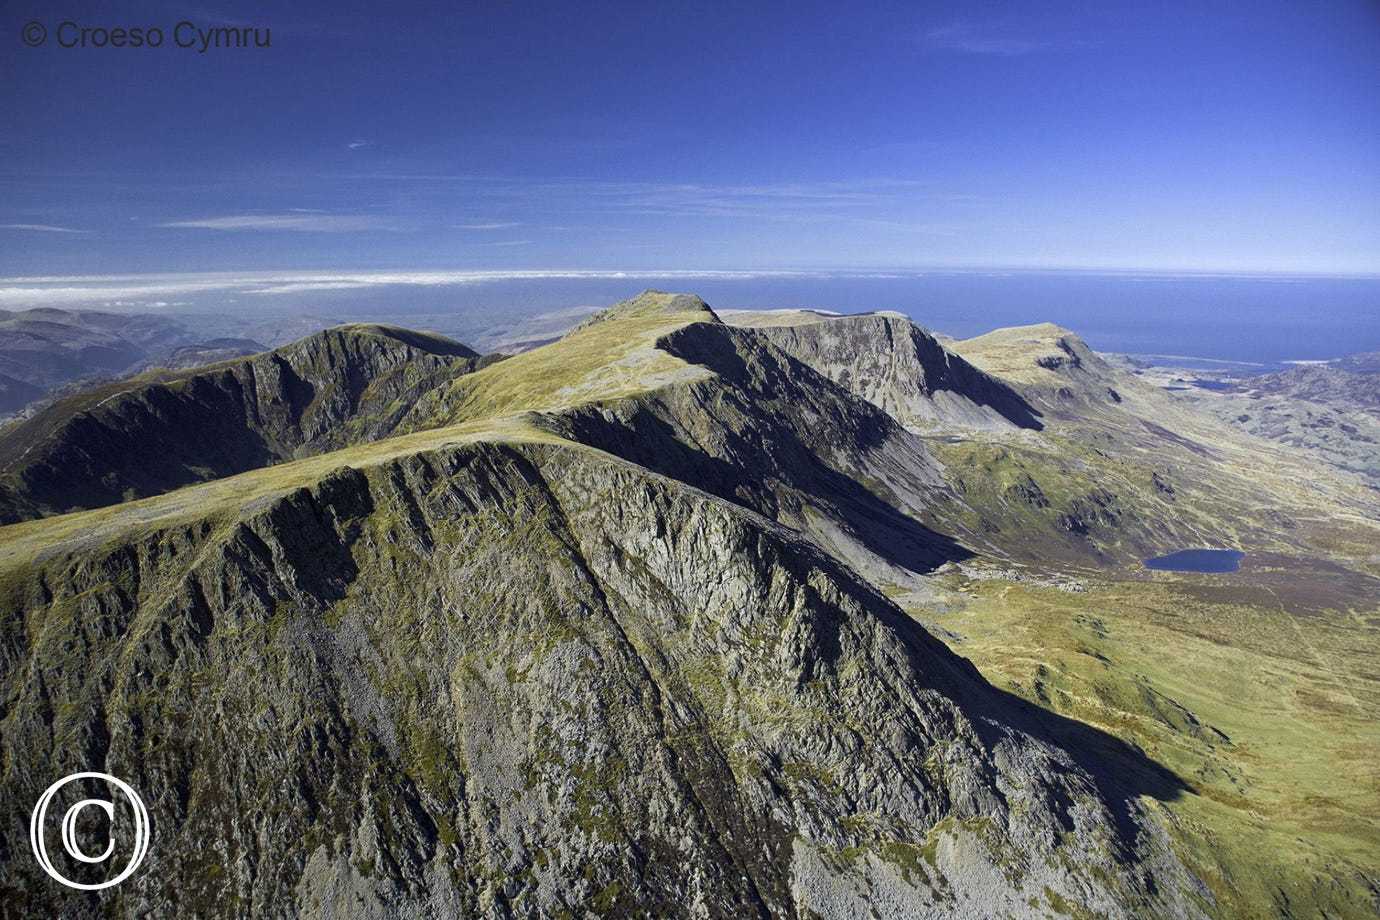 The majestic heights of Cader Idris with some very rewarding views